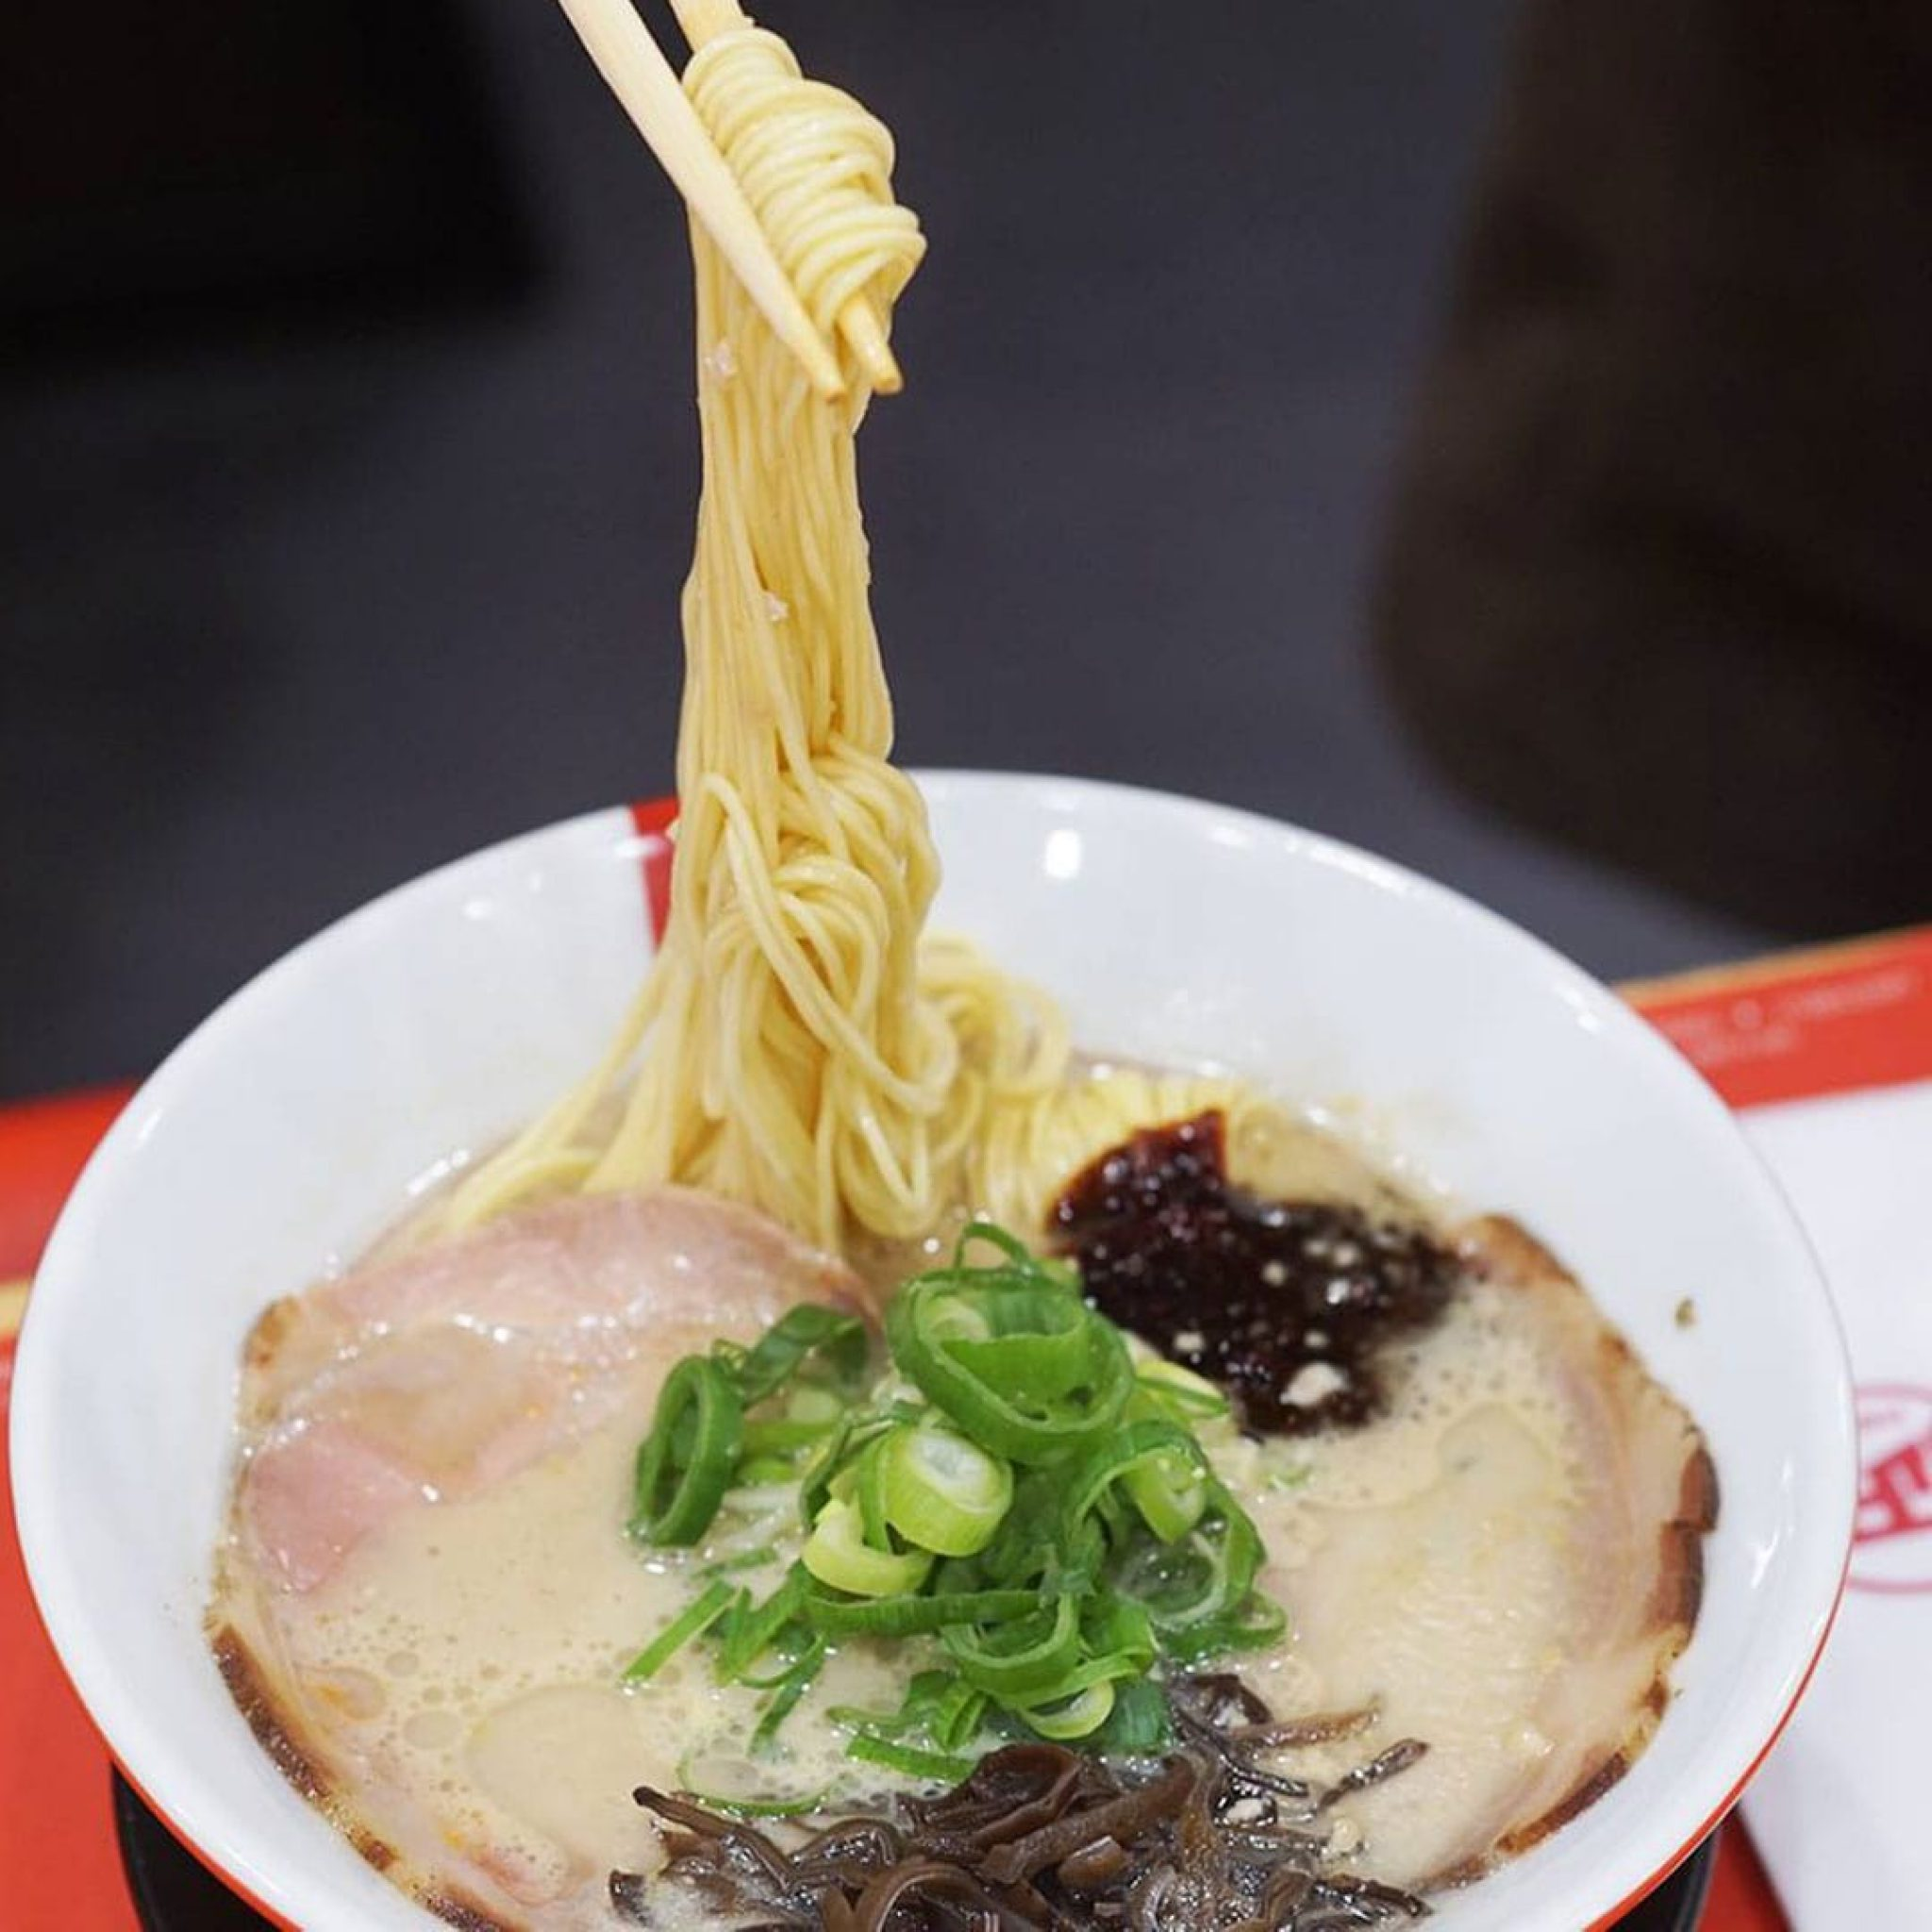 Top 20 Ramen Places In Manila: Savory Goodness From Noodles